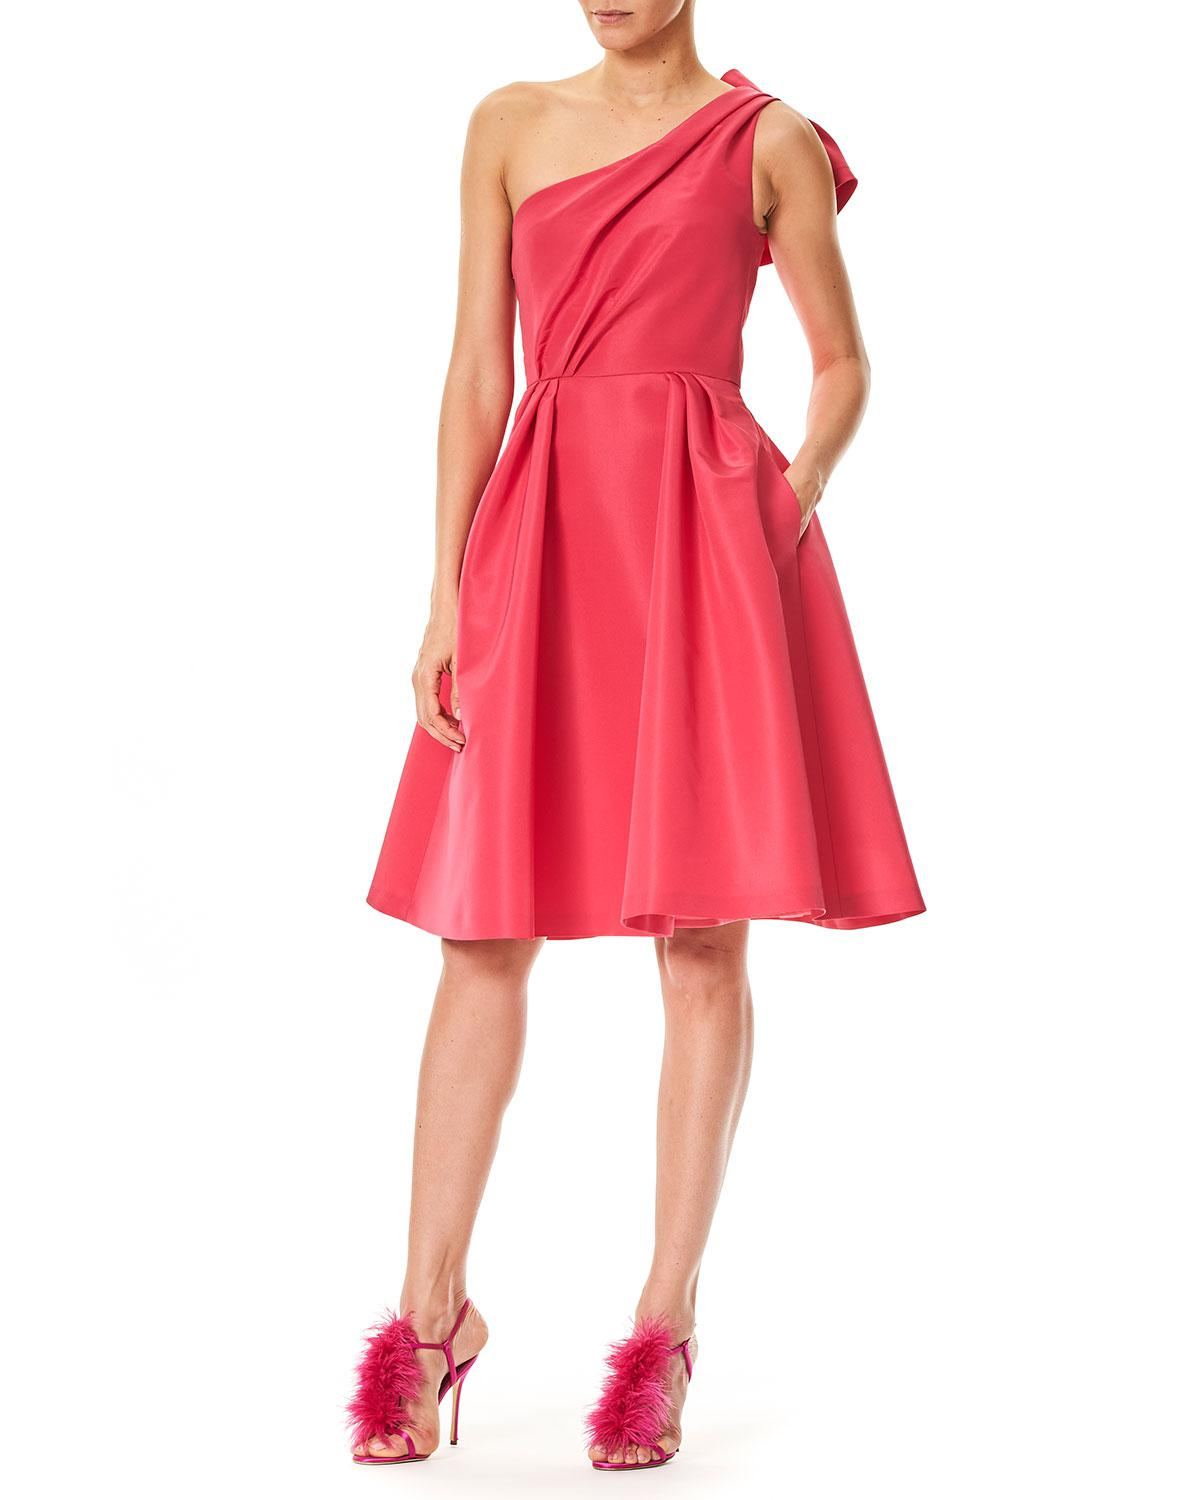 b8c8f57d023 Carolina Herrera - Red One-shoulder Cocktail Dress With Back Bow Detail -  Lyst. View fullscreen